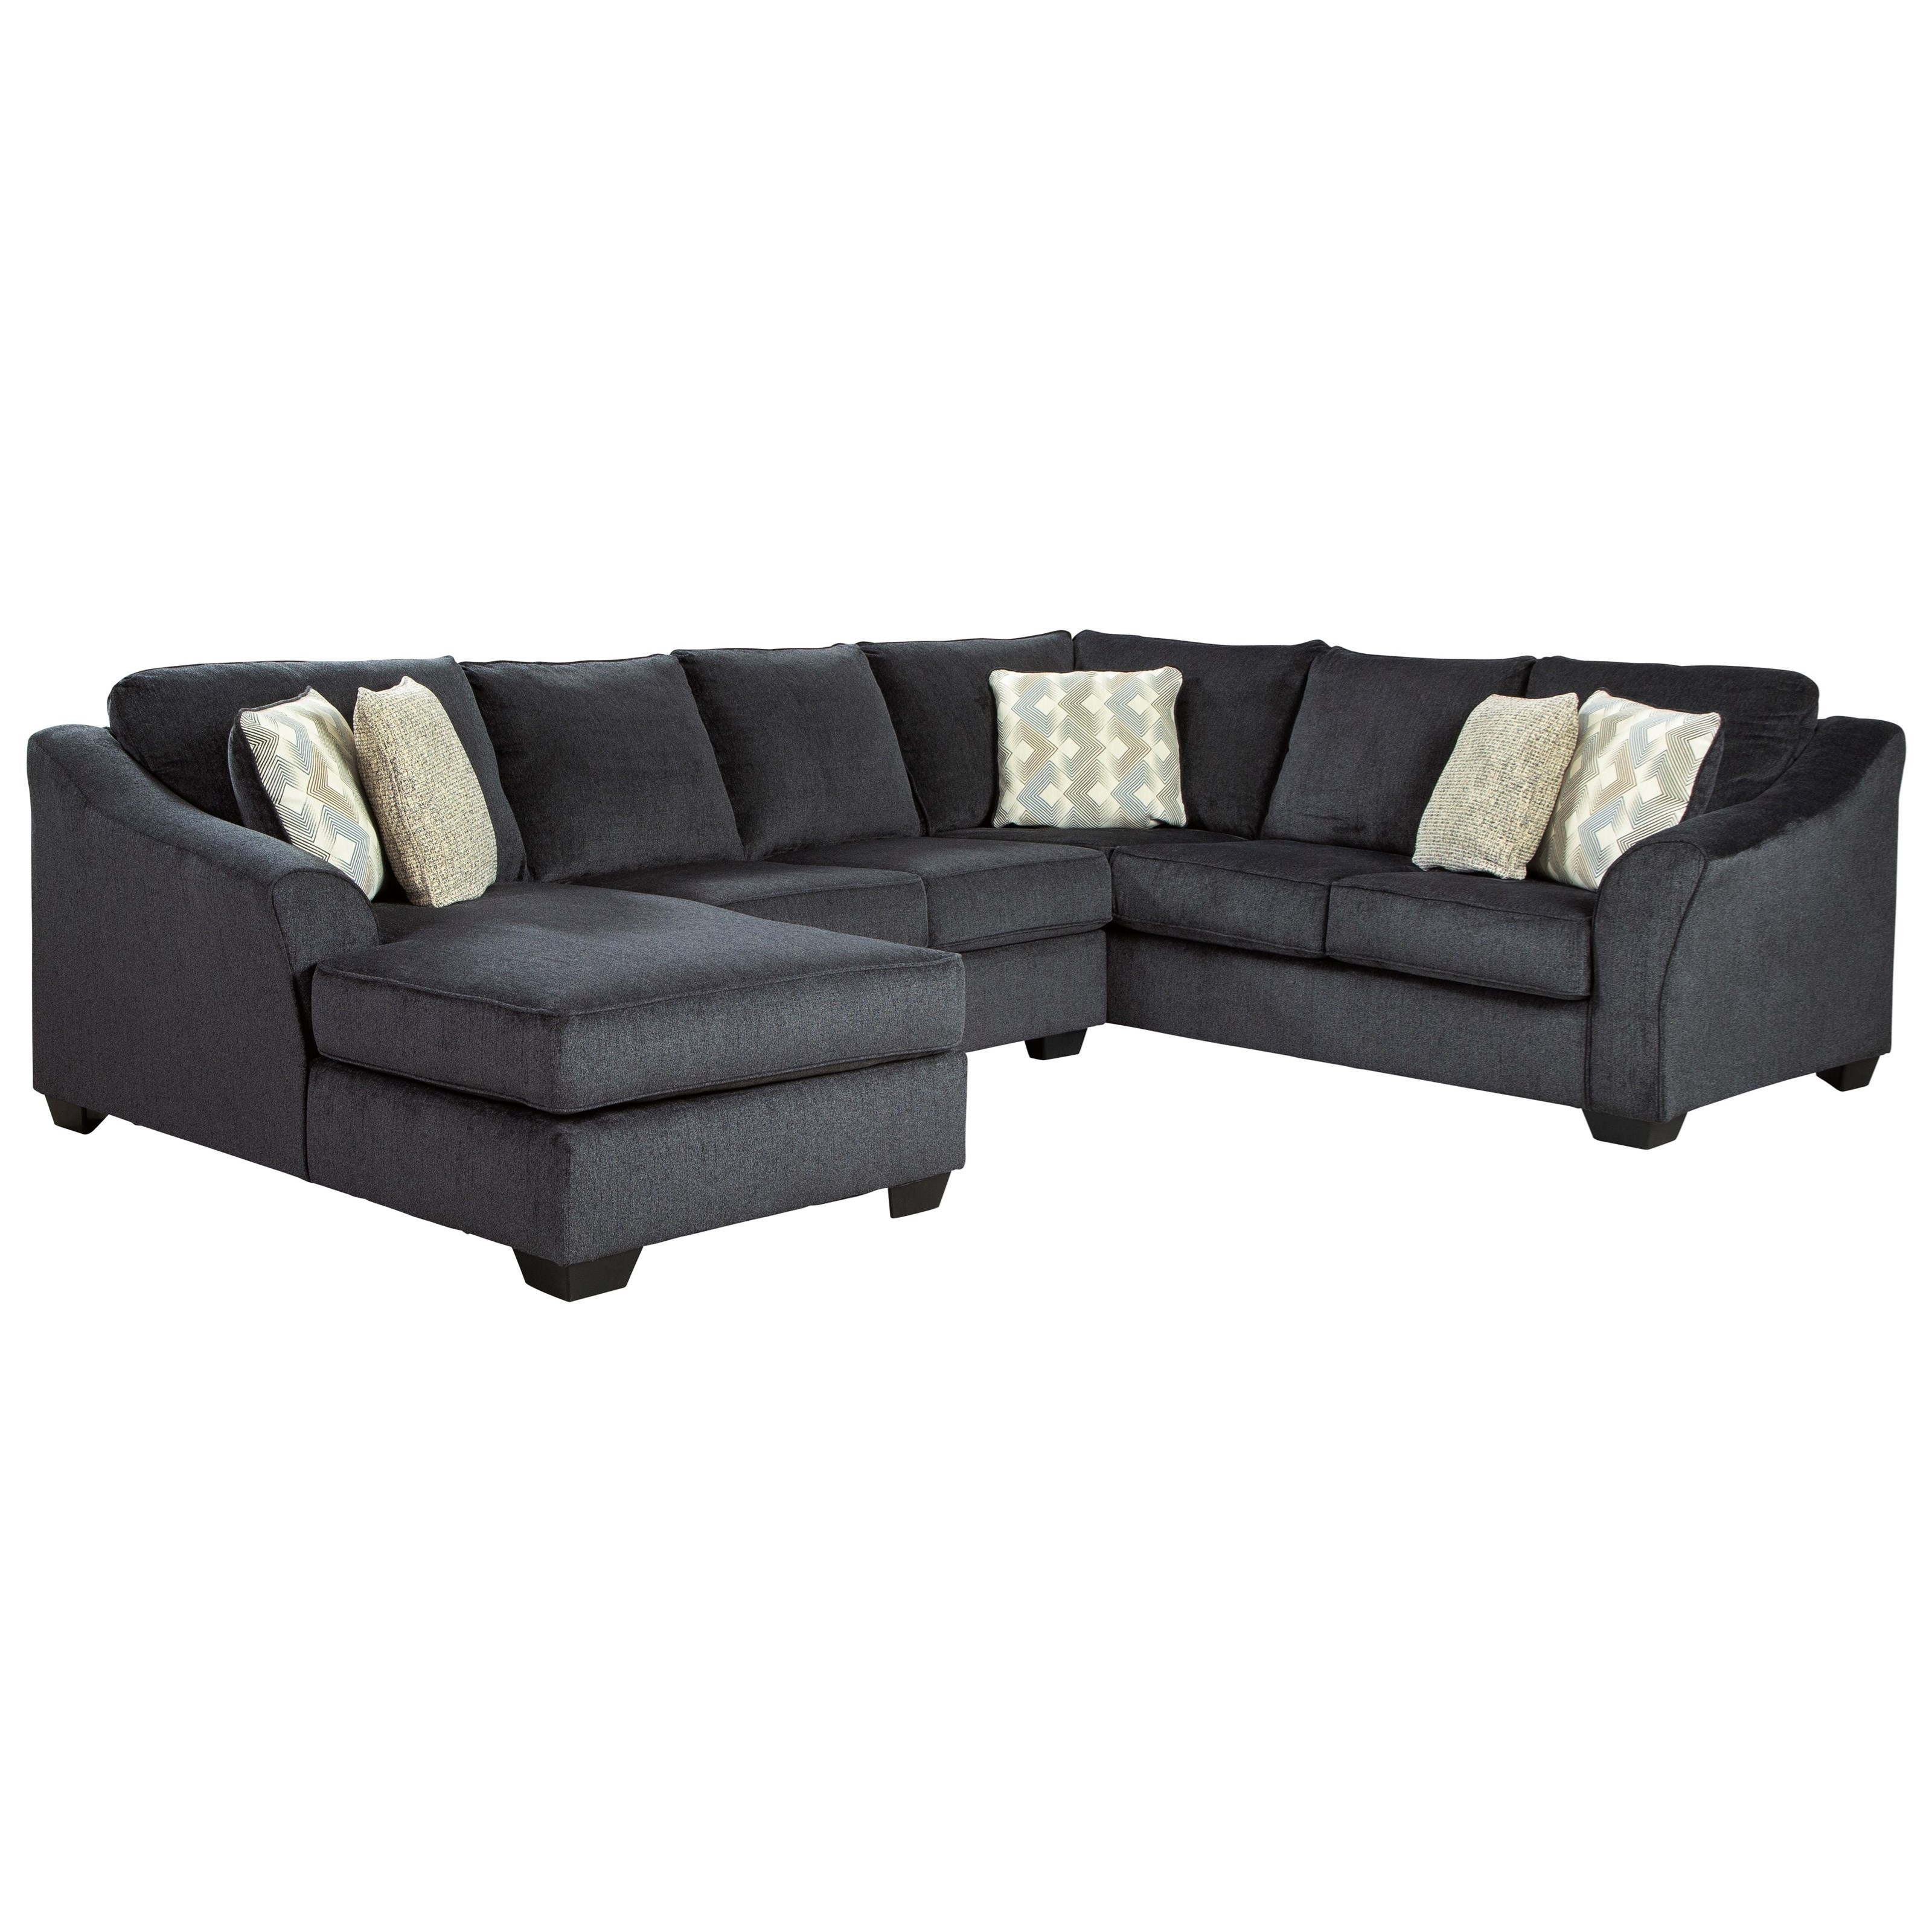 Eltmann 3-Piece Sectional by Signature Design by Ashley at Zak's Warehouse Clearance Center